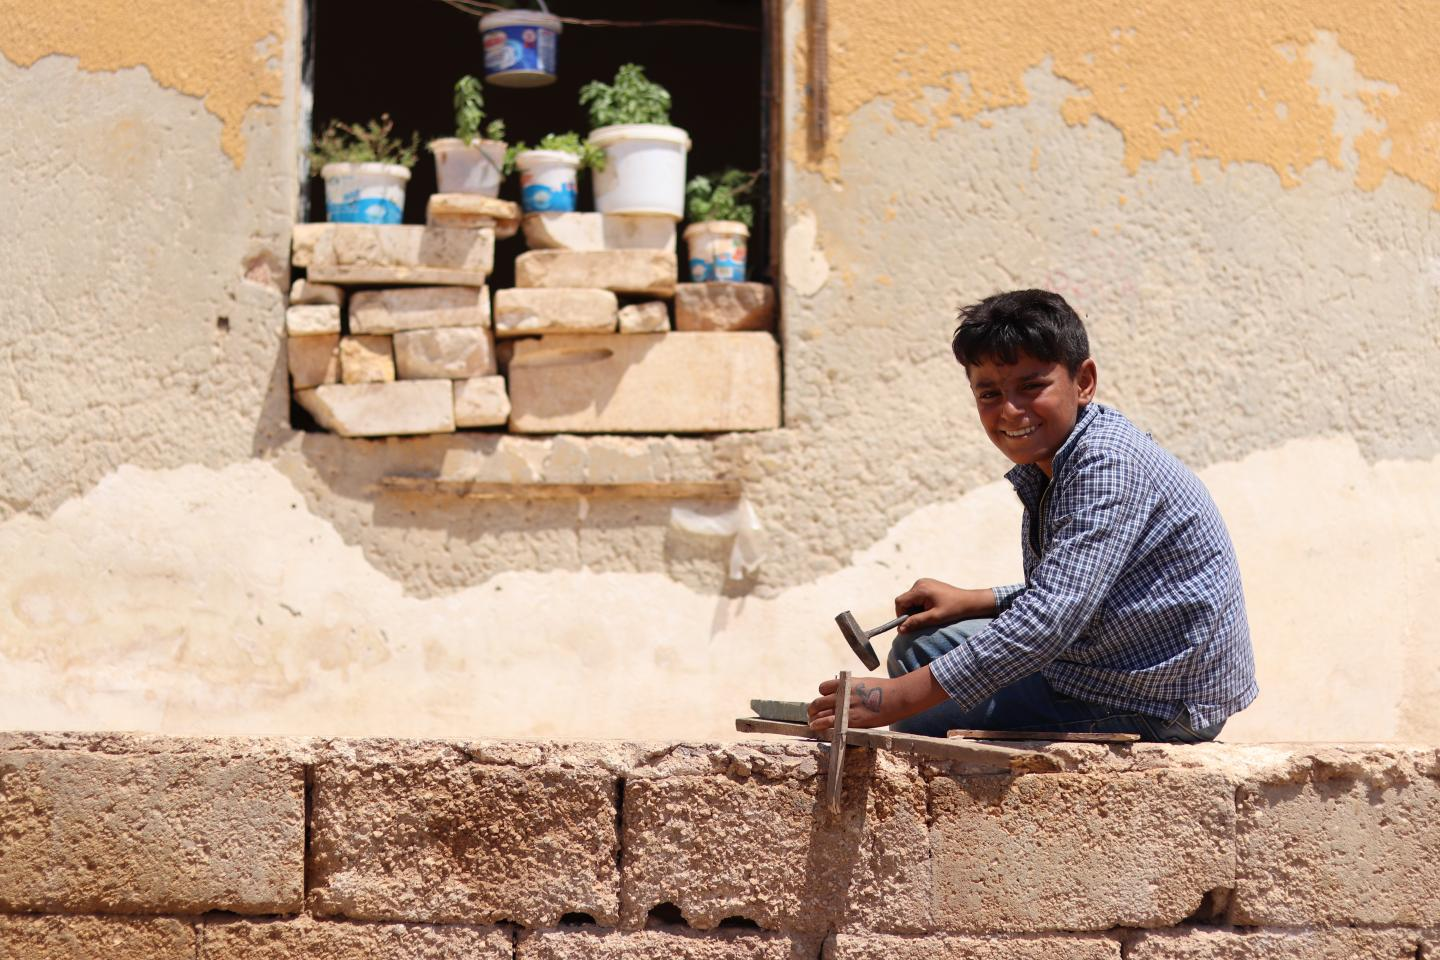 Abdulkareem: A story of loss and strength | UNICEF Middle East and North Africa